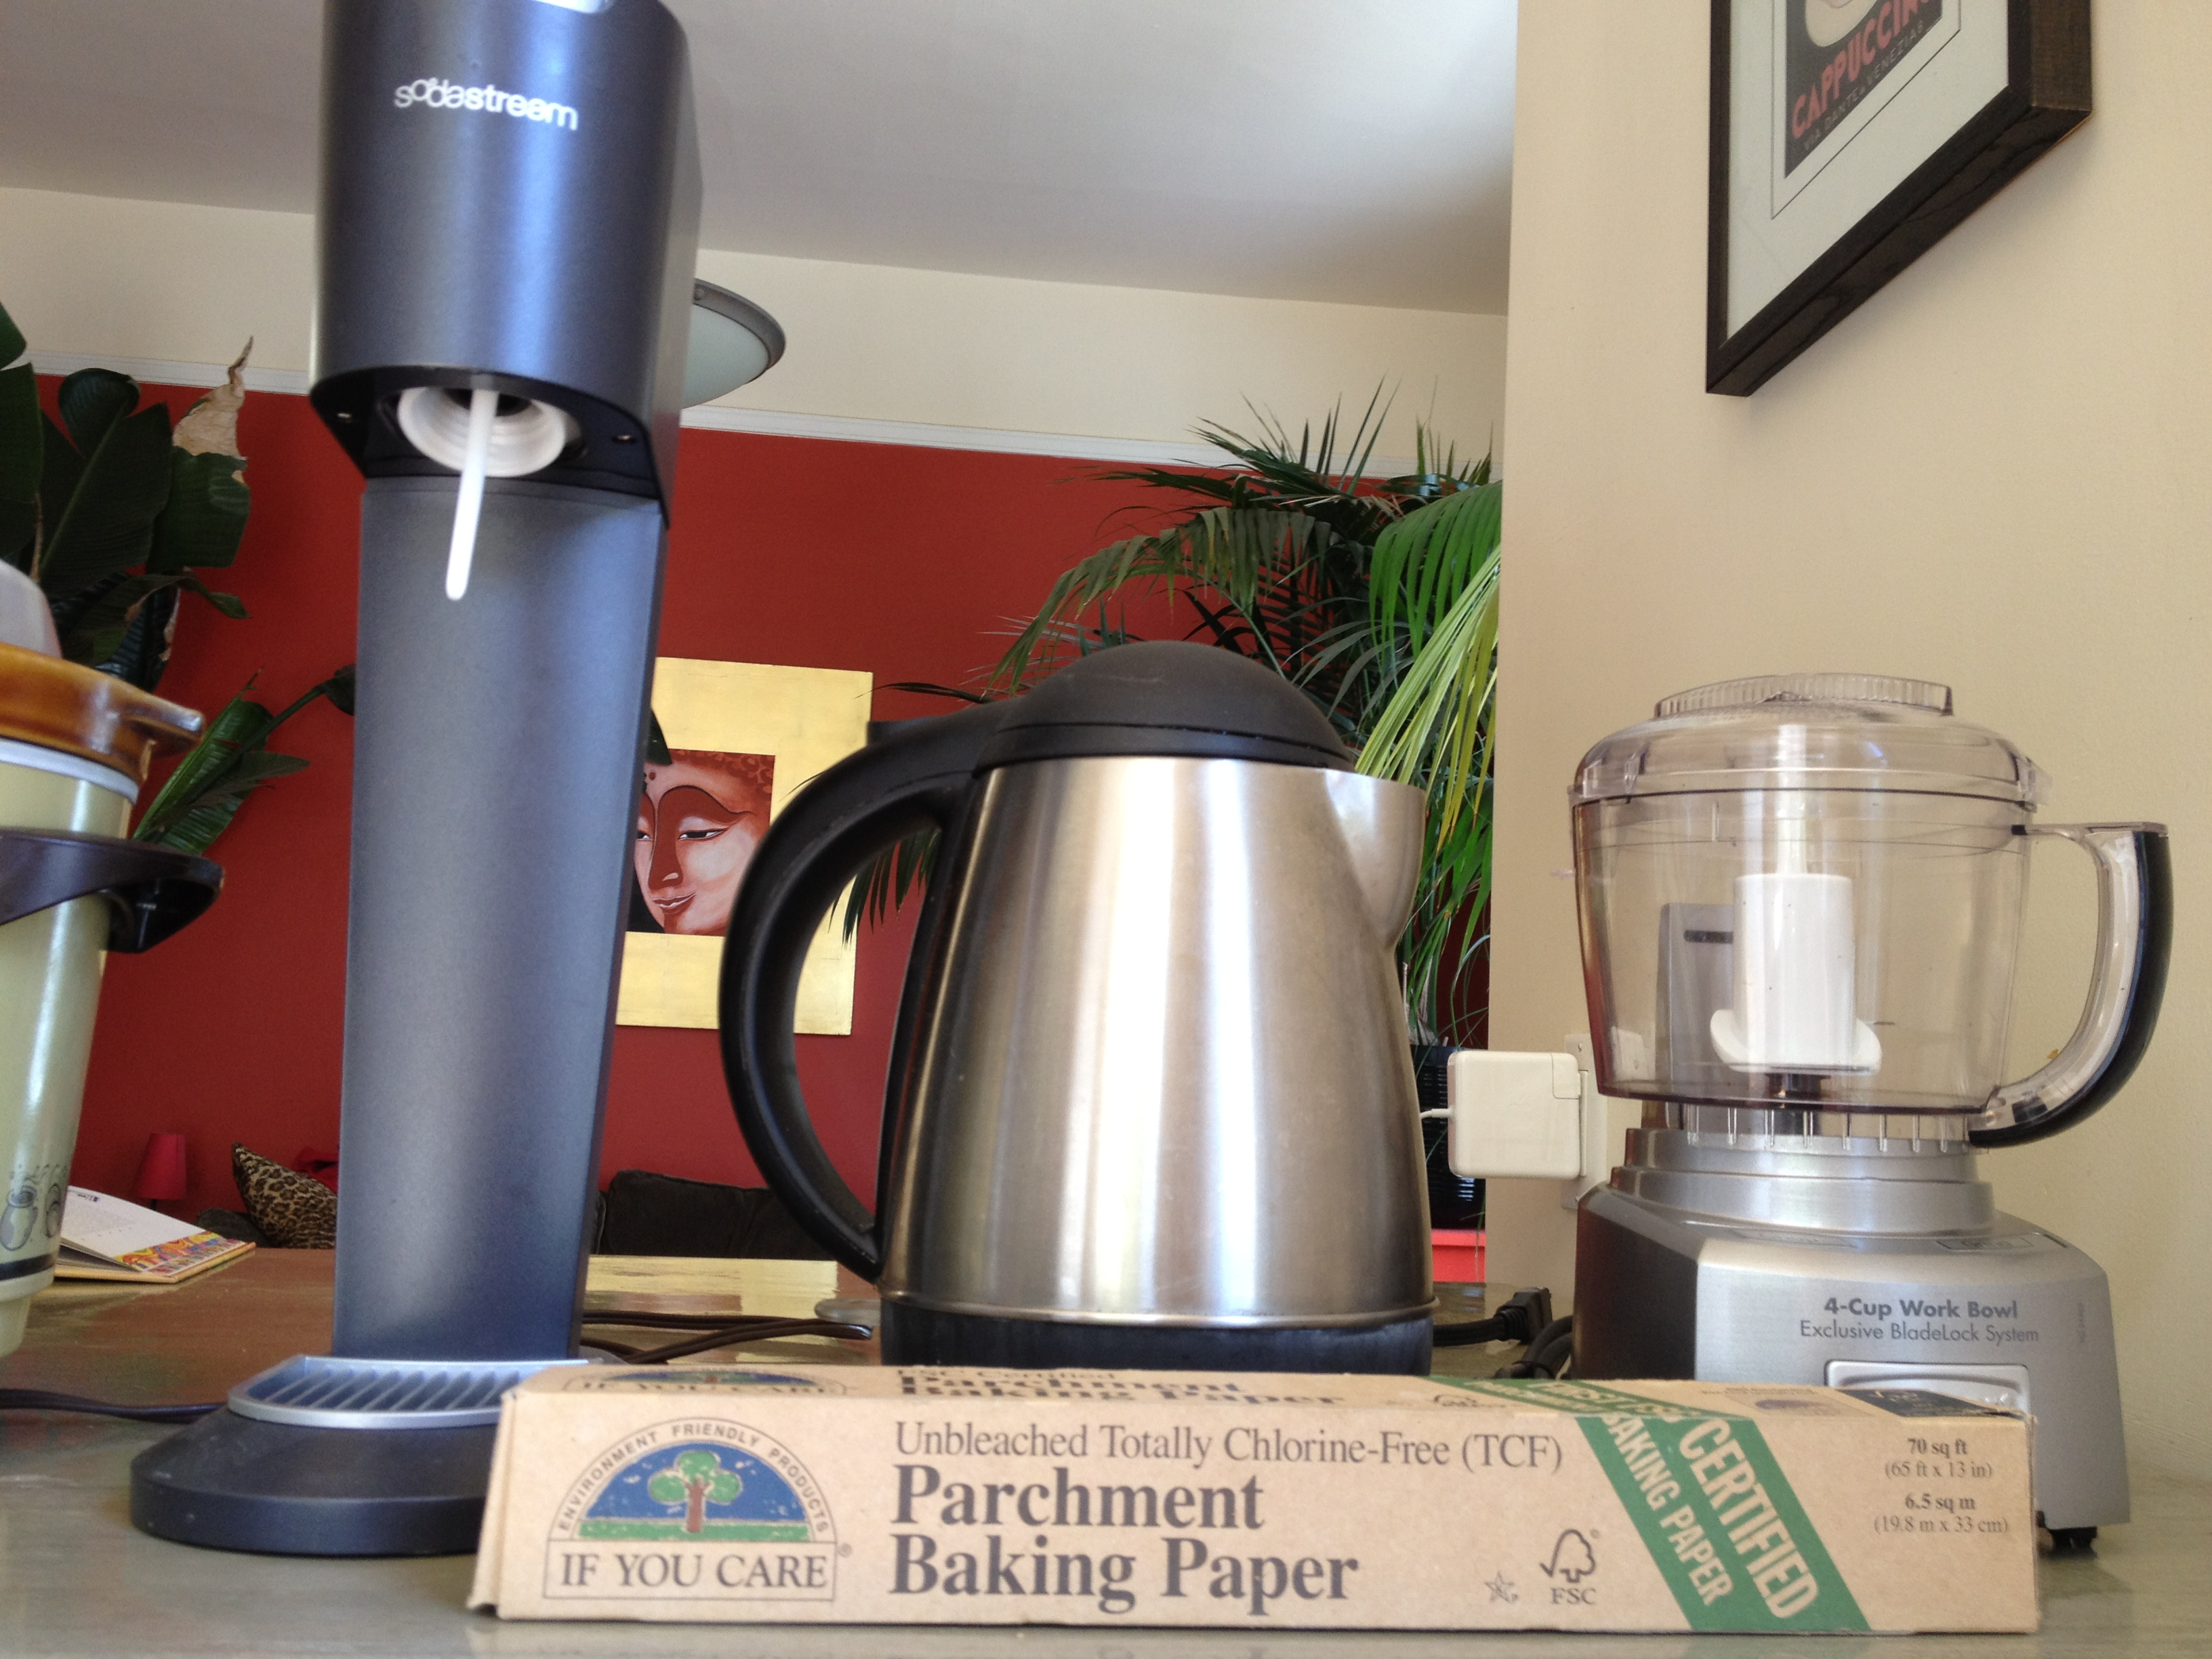 Soda stream, electric kettle, food processor, parchment paper